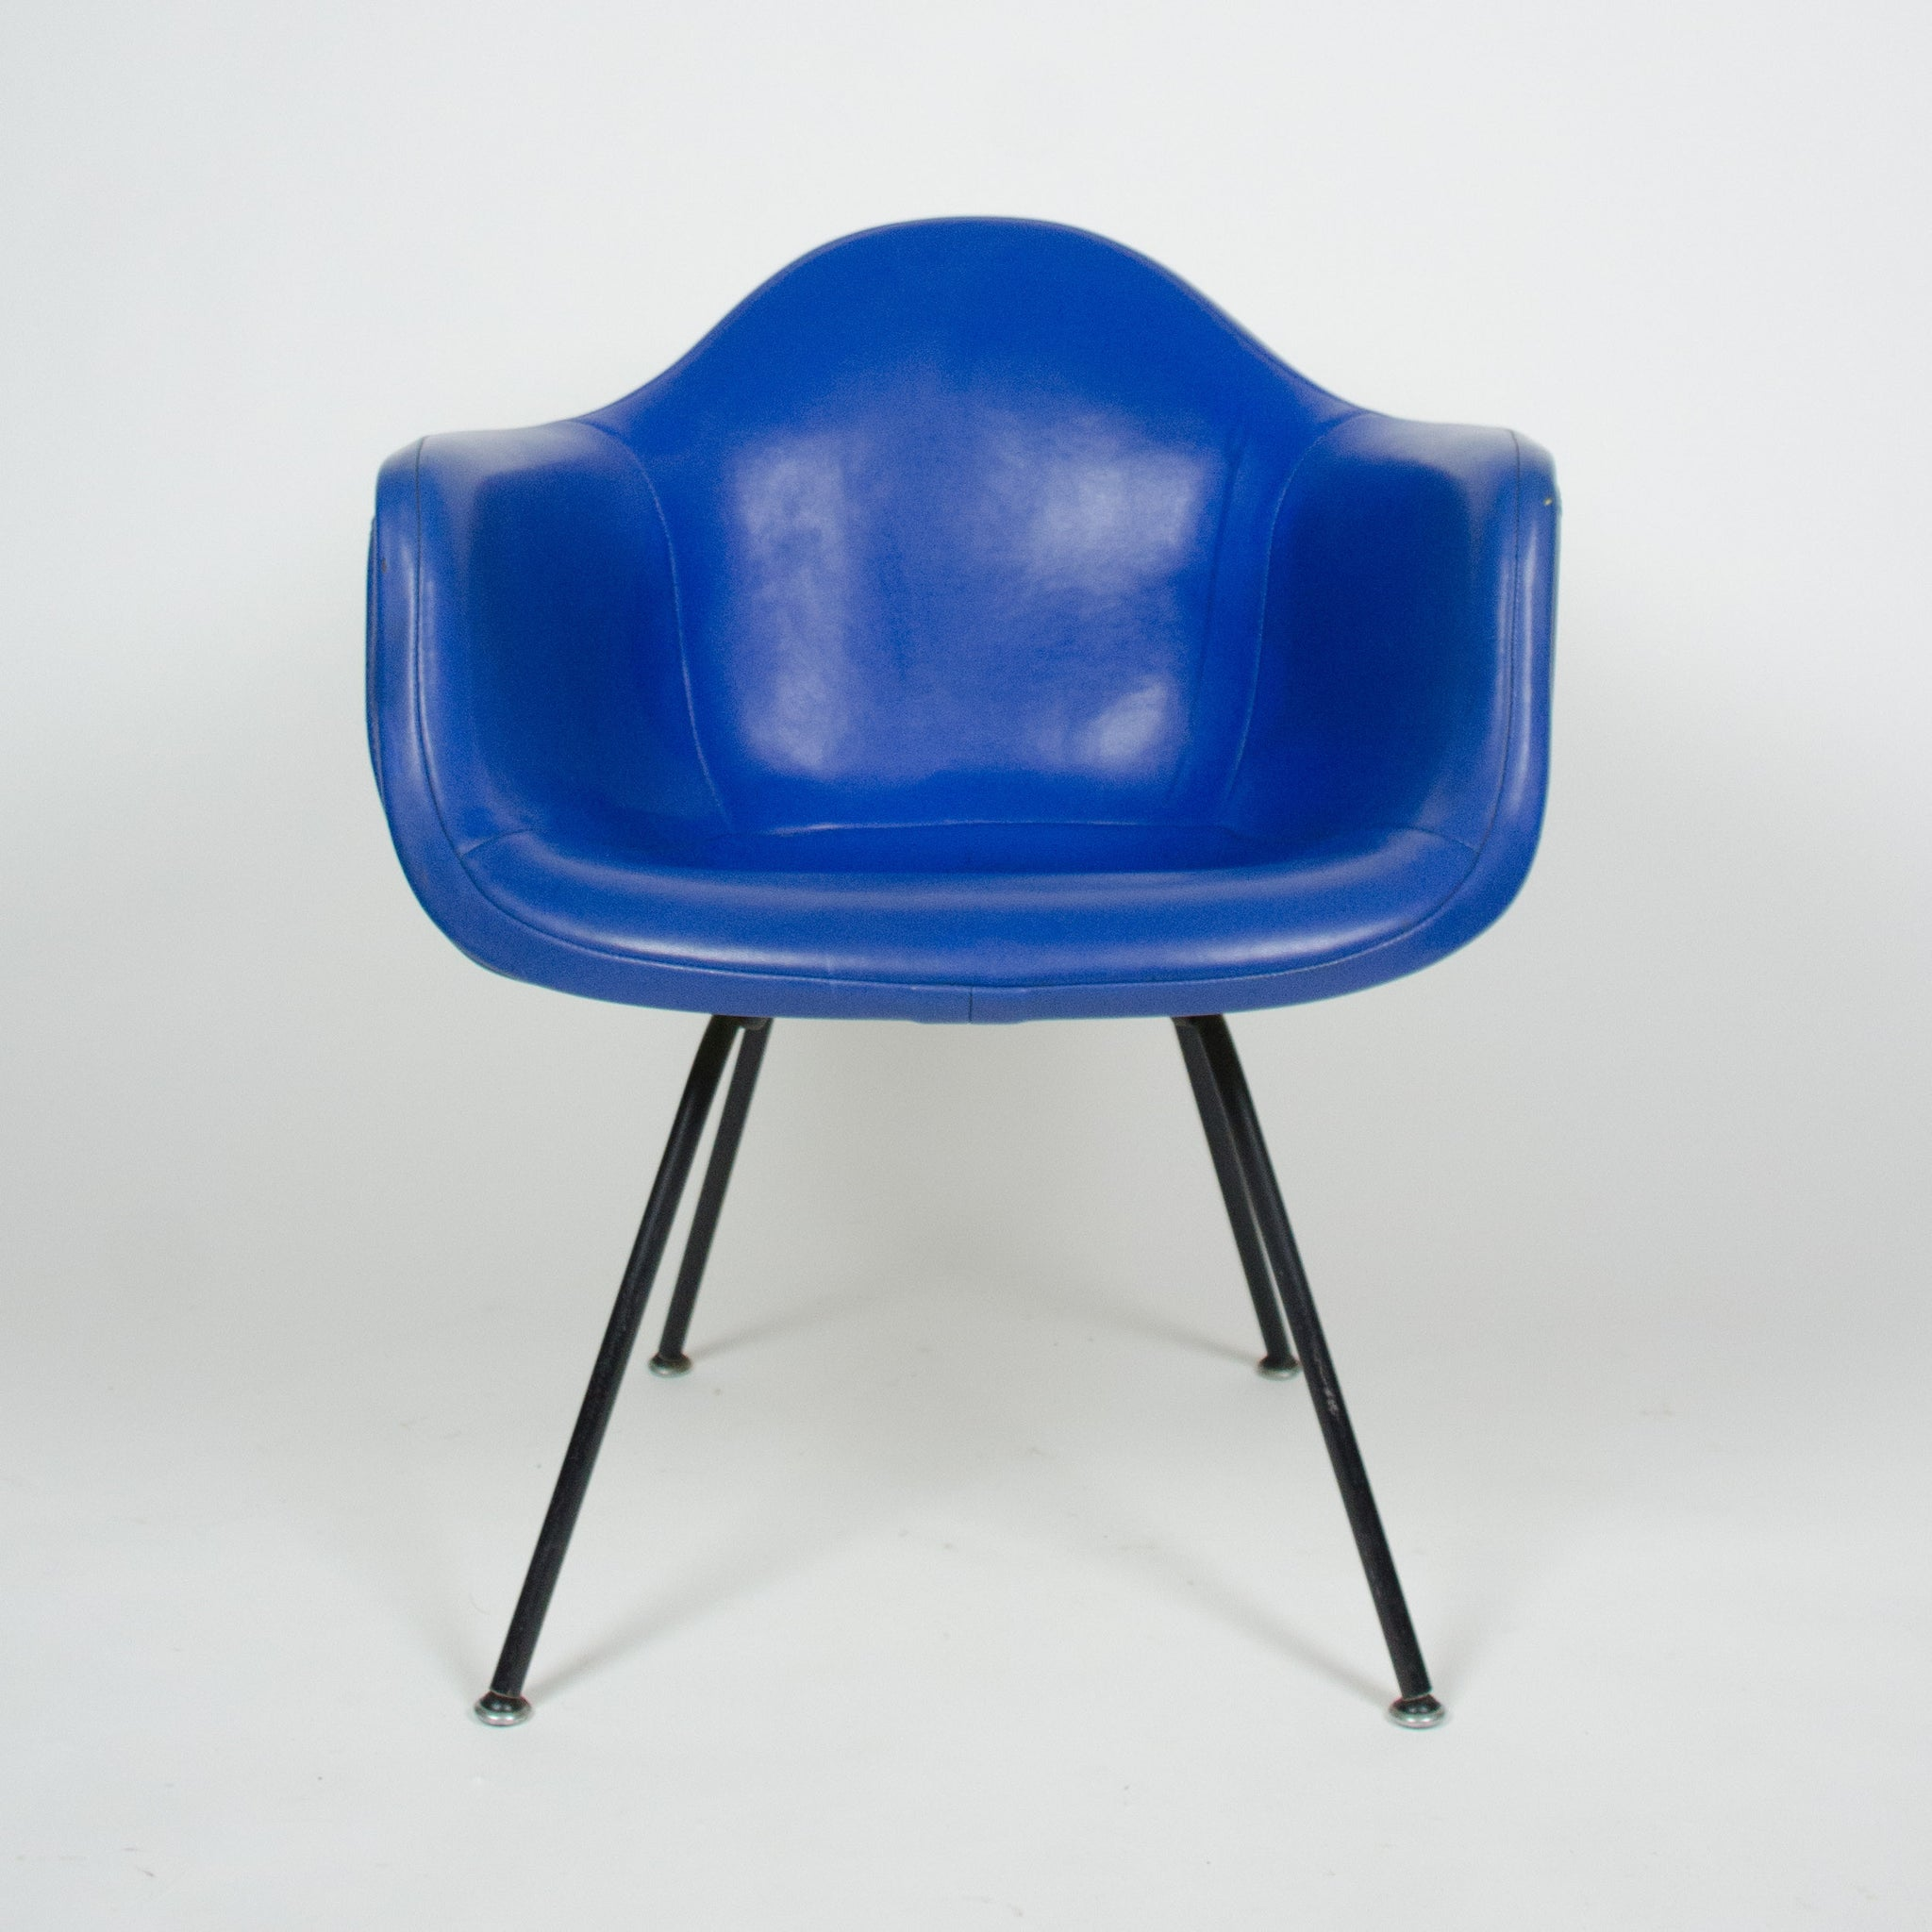 Eames Yellow U0026 Blue Herman Miller Upholstered Fiberglass Shell Chair DAX 1